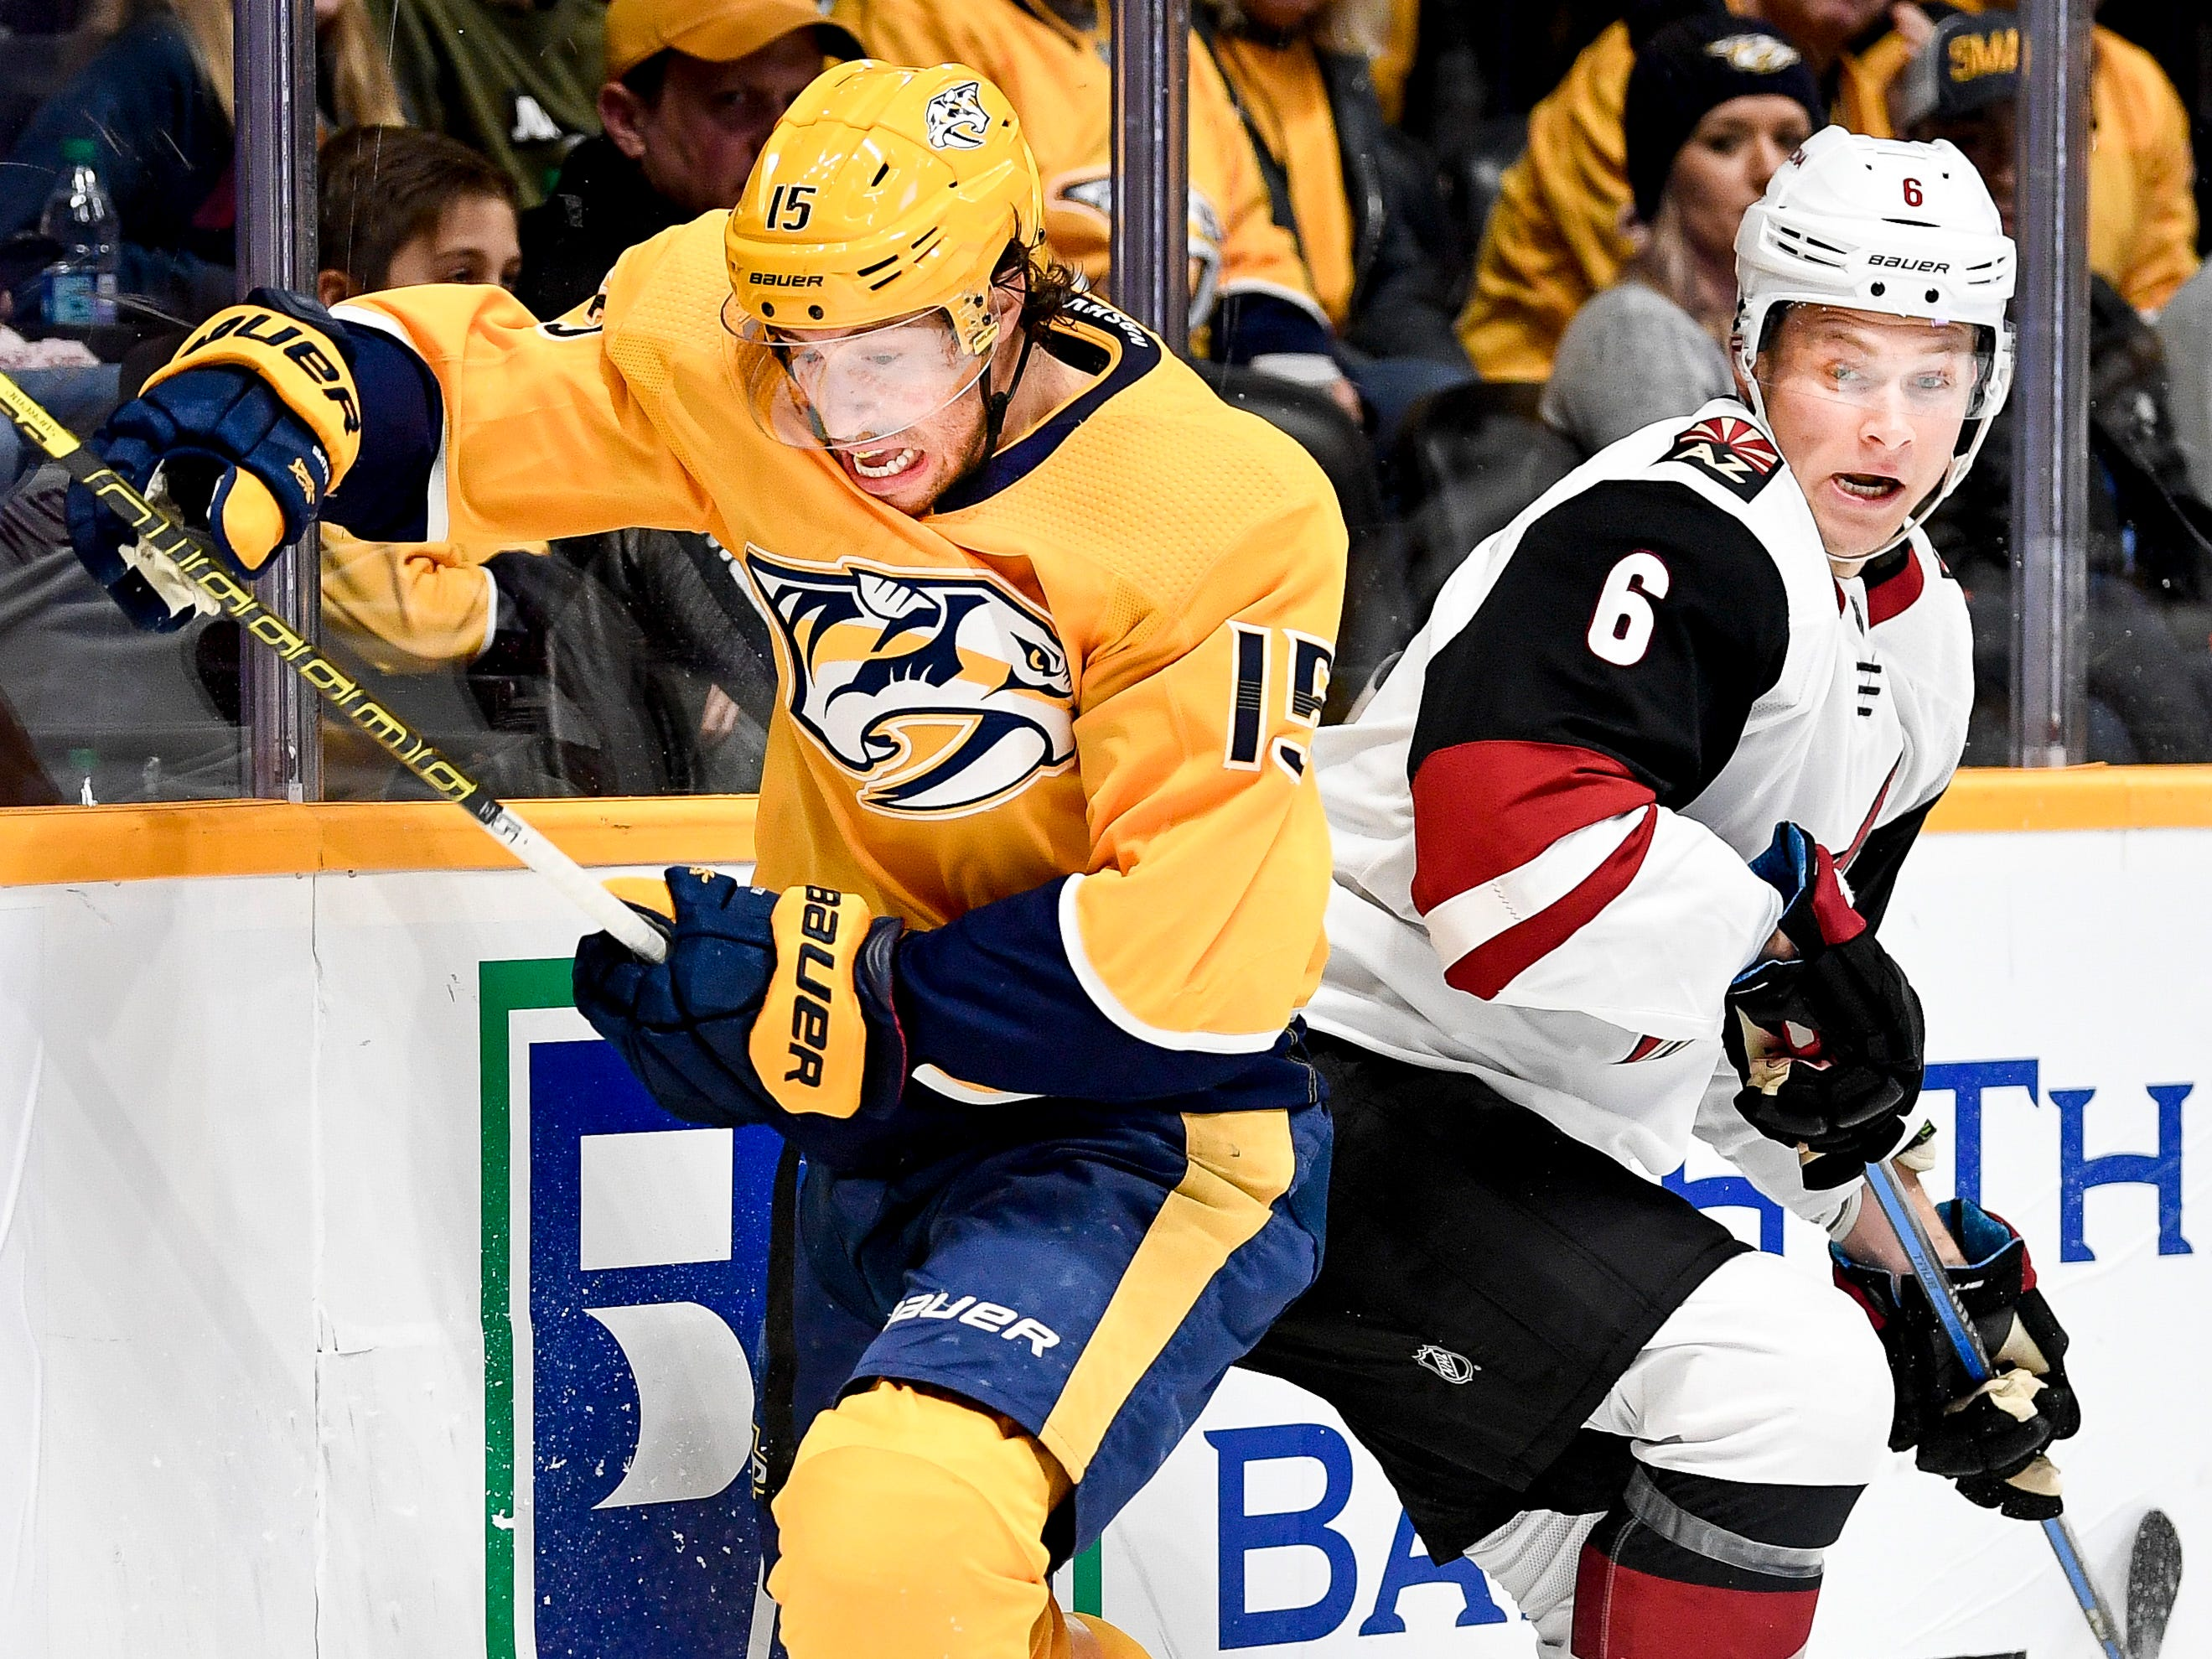 Nashville Predators right wing Craig Smith (15) fights for the puck with Arizona Coyotes defenseman Jakob Chychrun (6) during the first period at Bridgestone Arena in Nashville, Tenn., Thursday, Nov. 29, 2018.